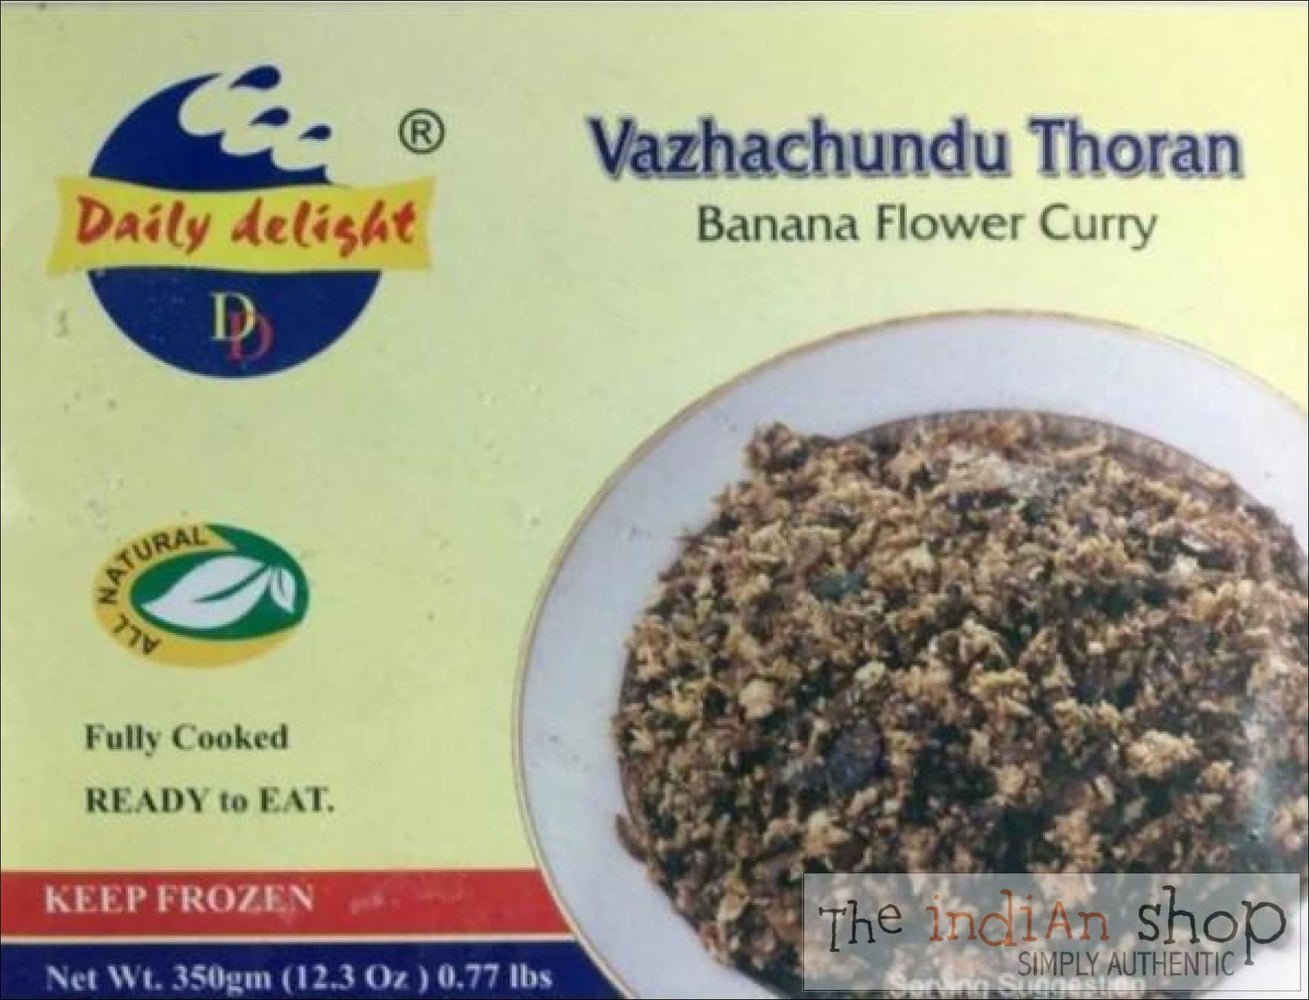 Daily Delight Vazhachundu Thoran - Frozen Curries